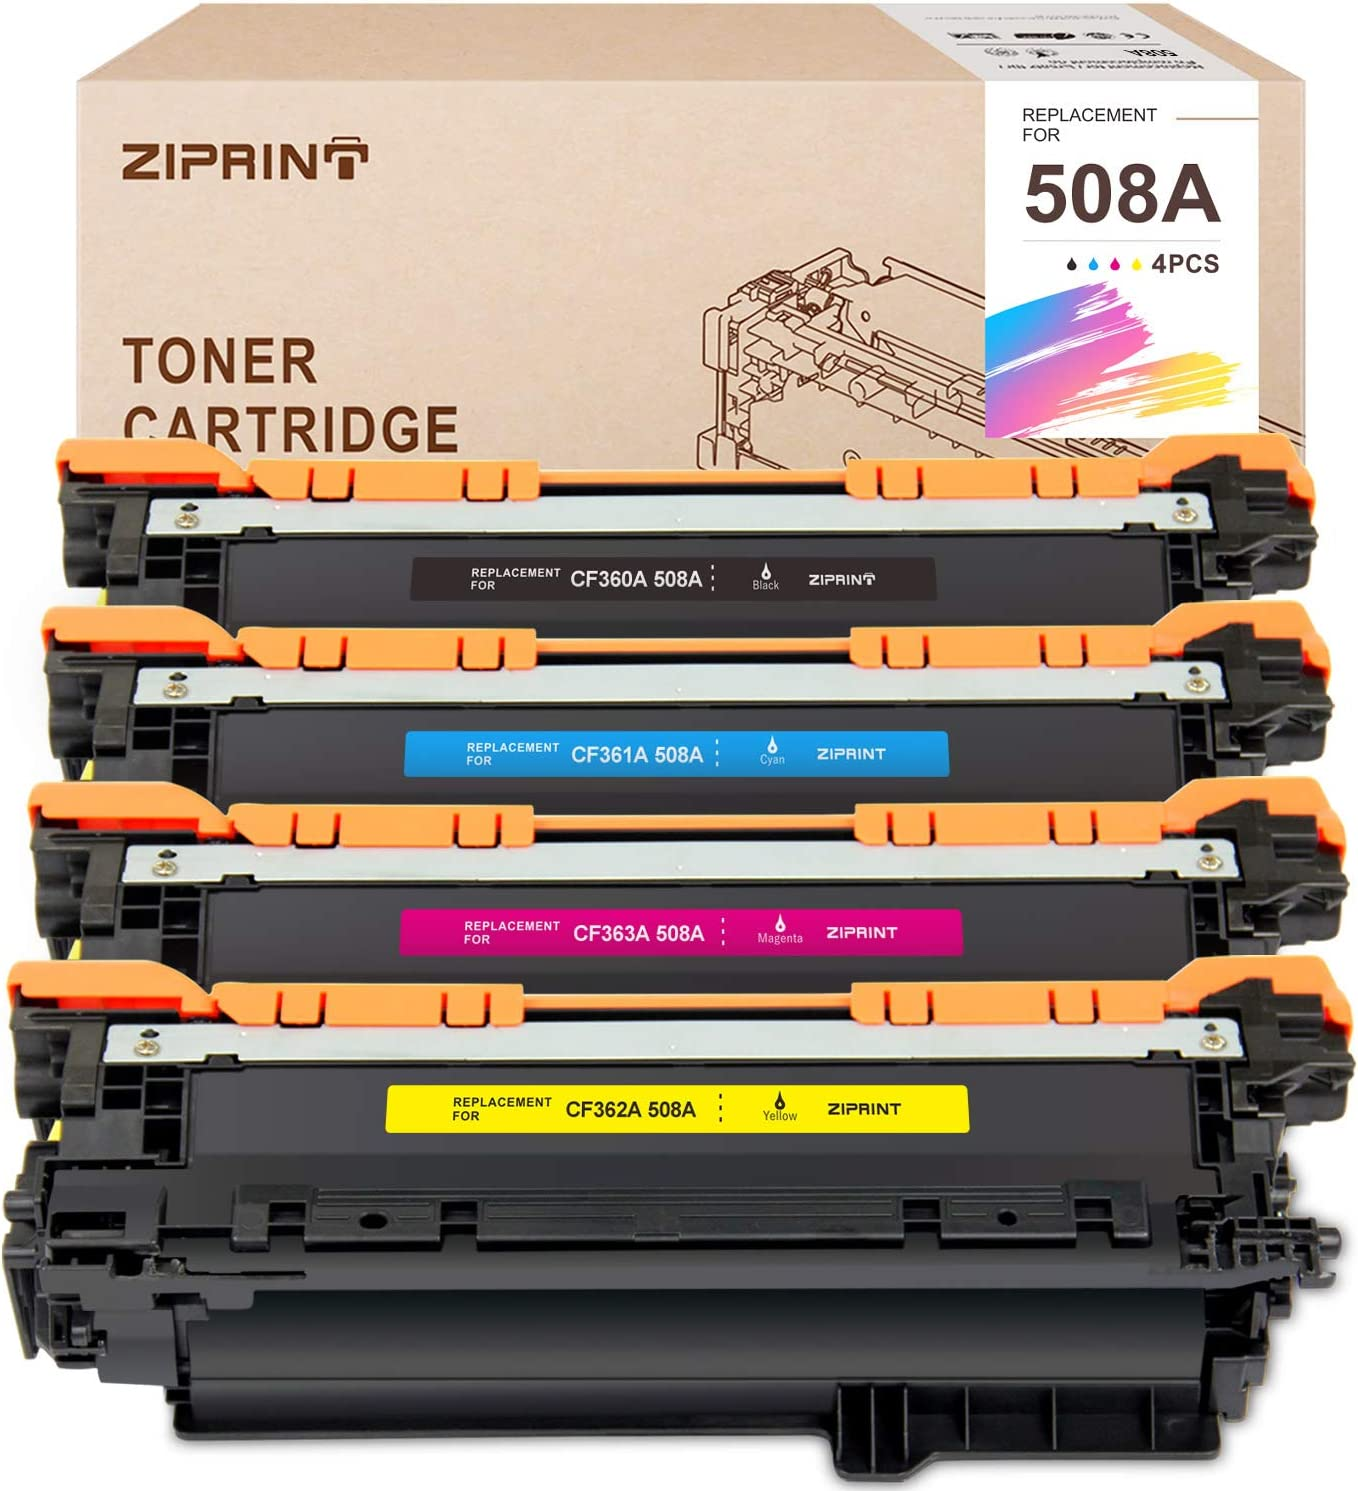 ZIPRINT Compatible Toner Cartridge Replacement for HP 508A 508 CF360A use for Color Laserjet Enterprise M552dn M553 M553n M553dn M553x M577f M577dn M577z (Black Cyan Yellow Magenta, 4-Pack)